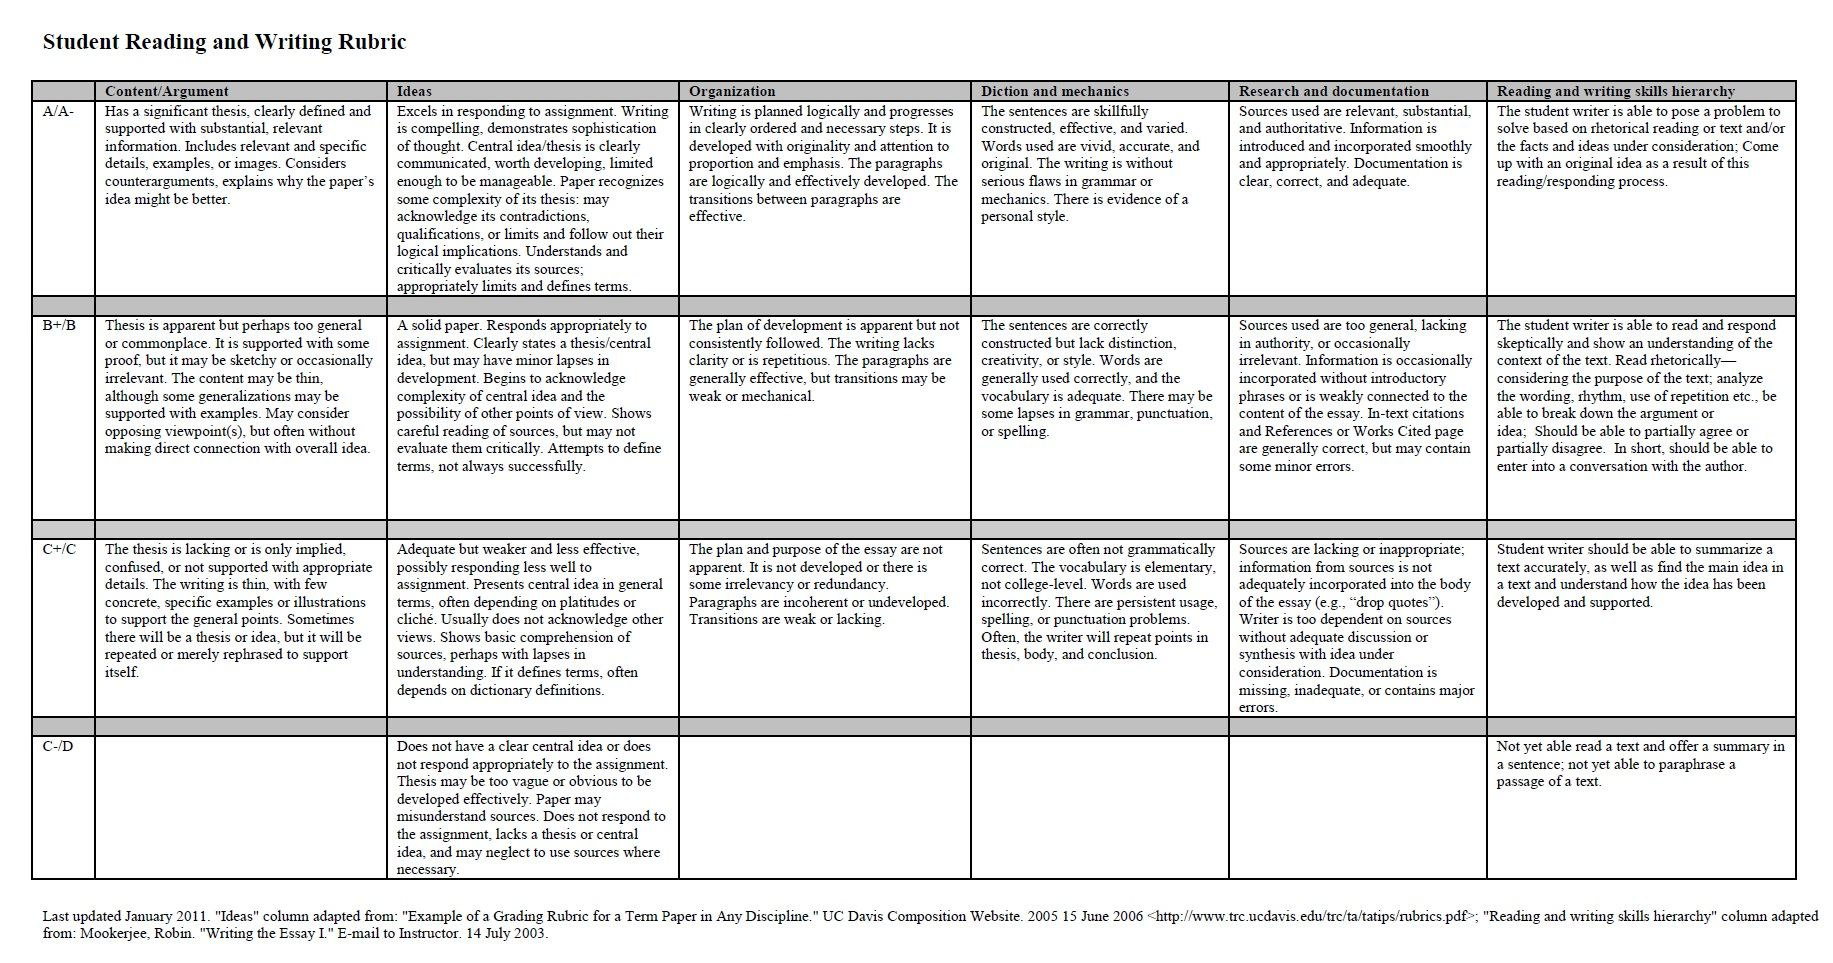 CREATIVE WRITING RUBRIC